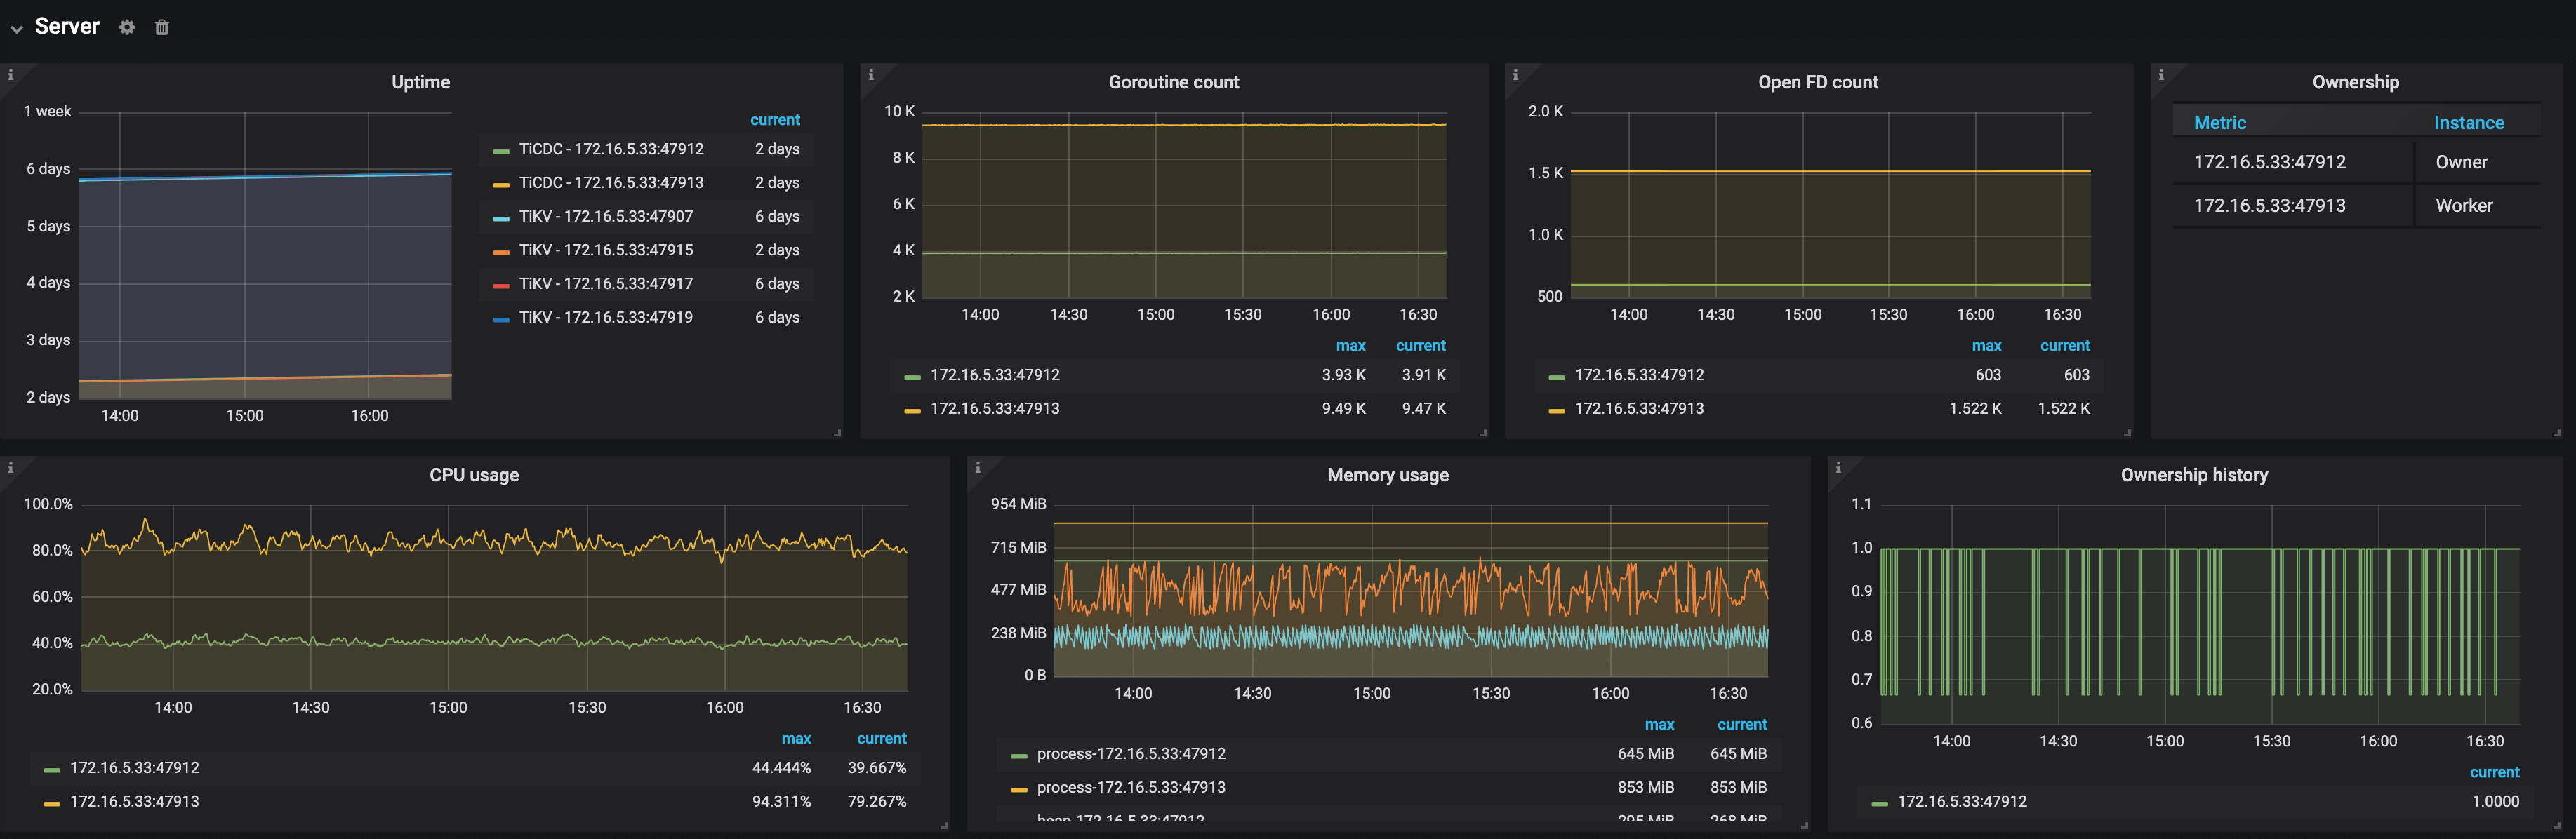 TiCDC Dashboard - Server metrics